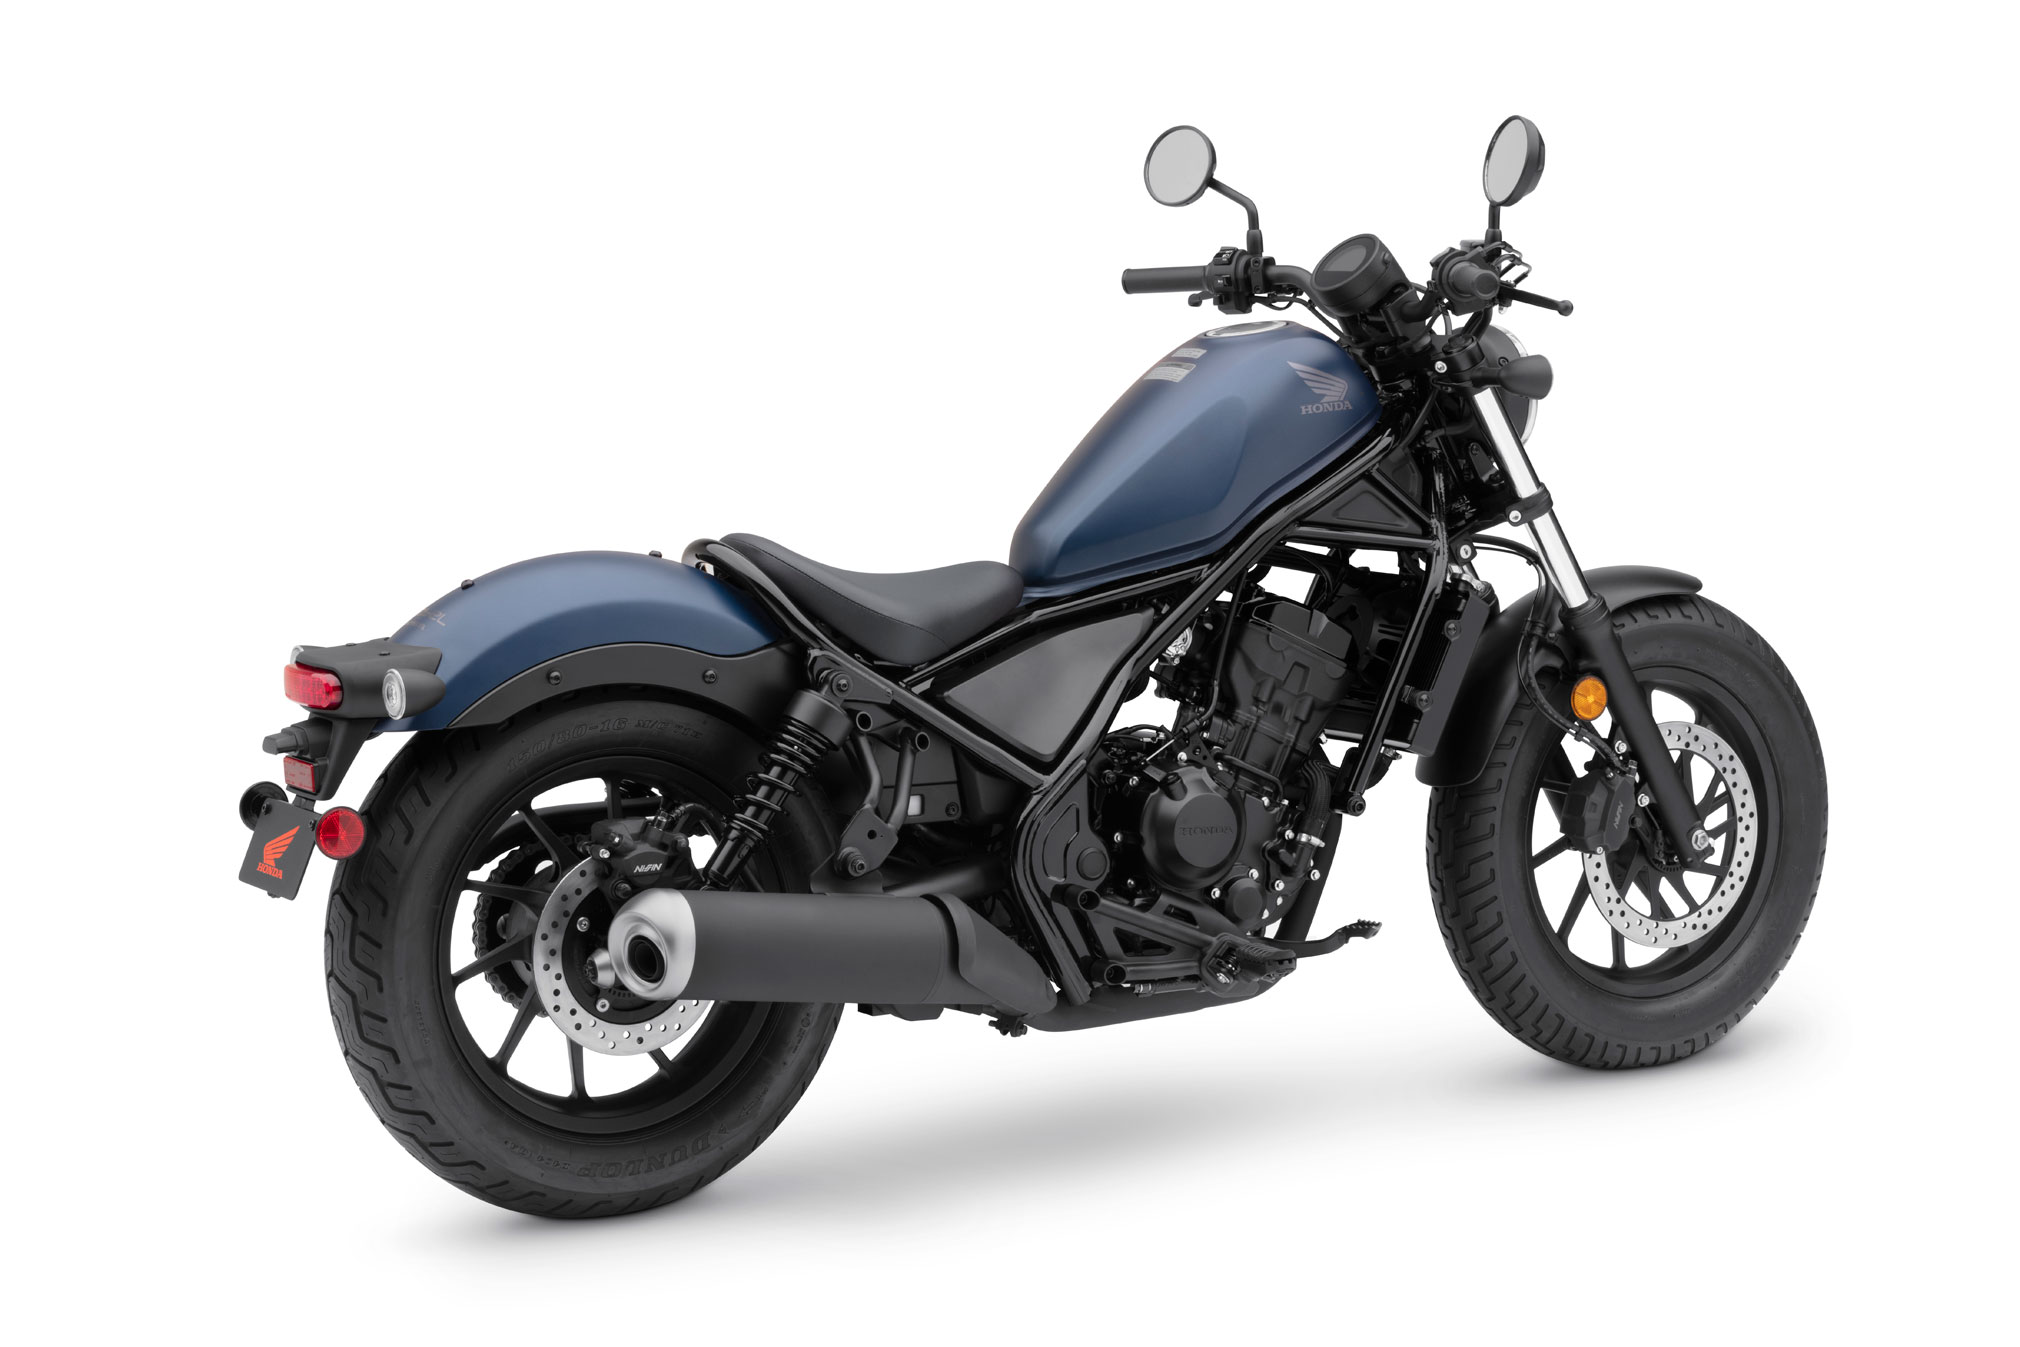 2020 honda rebel 300 abs guide • total motorcycle